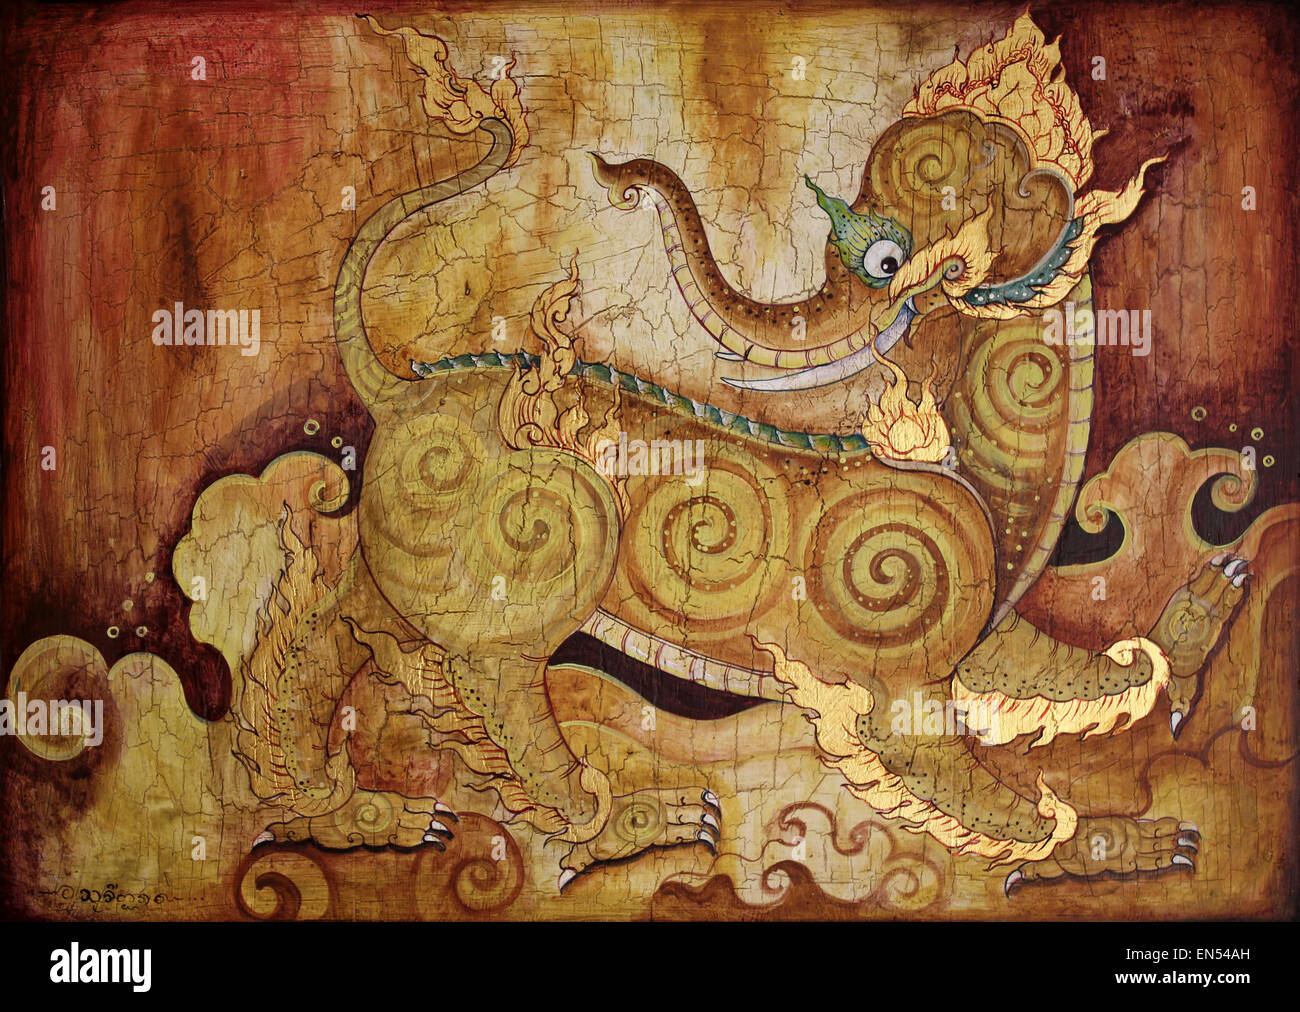 Kochasri - the Thai Mythical Creature With A Body Of A Lion And Head Of An Elephant - Stock Image